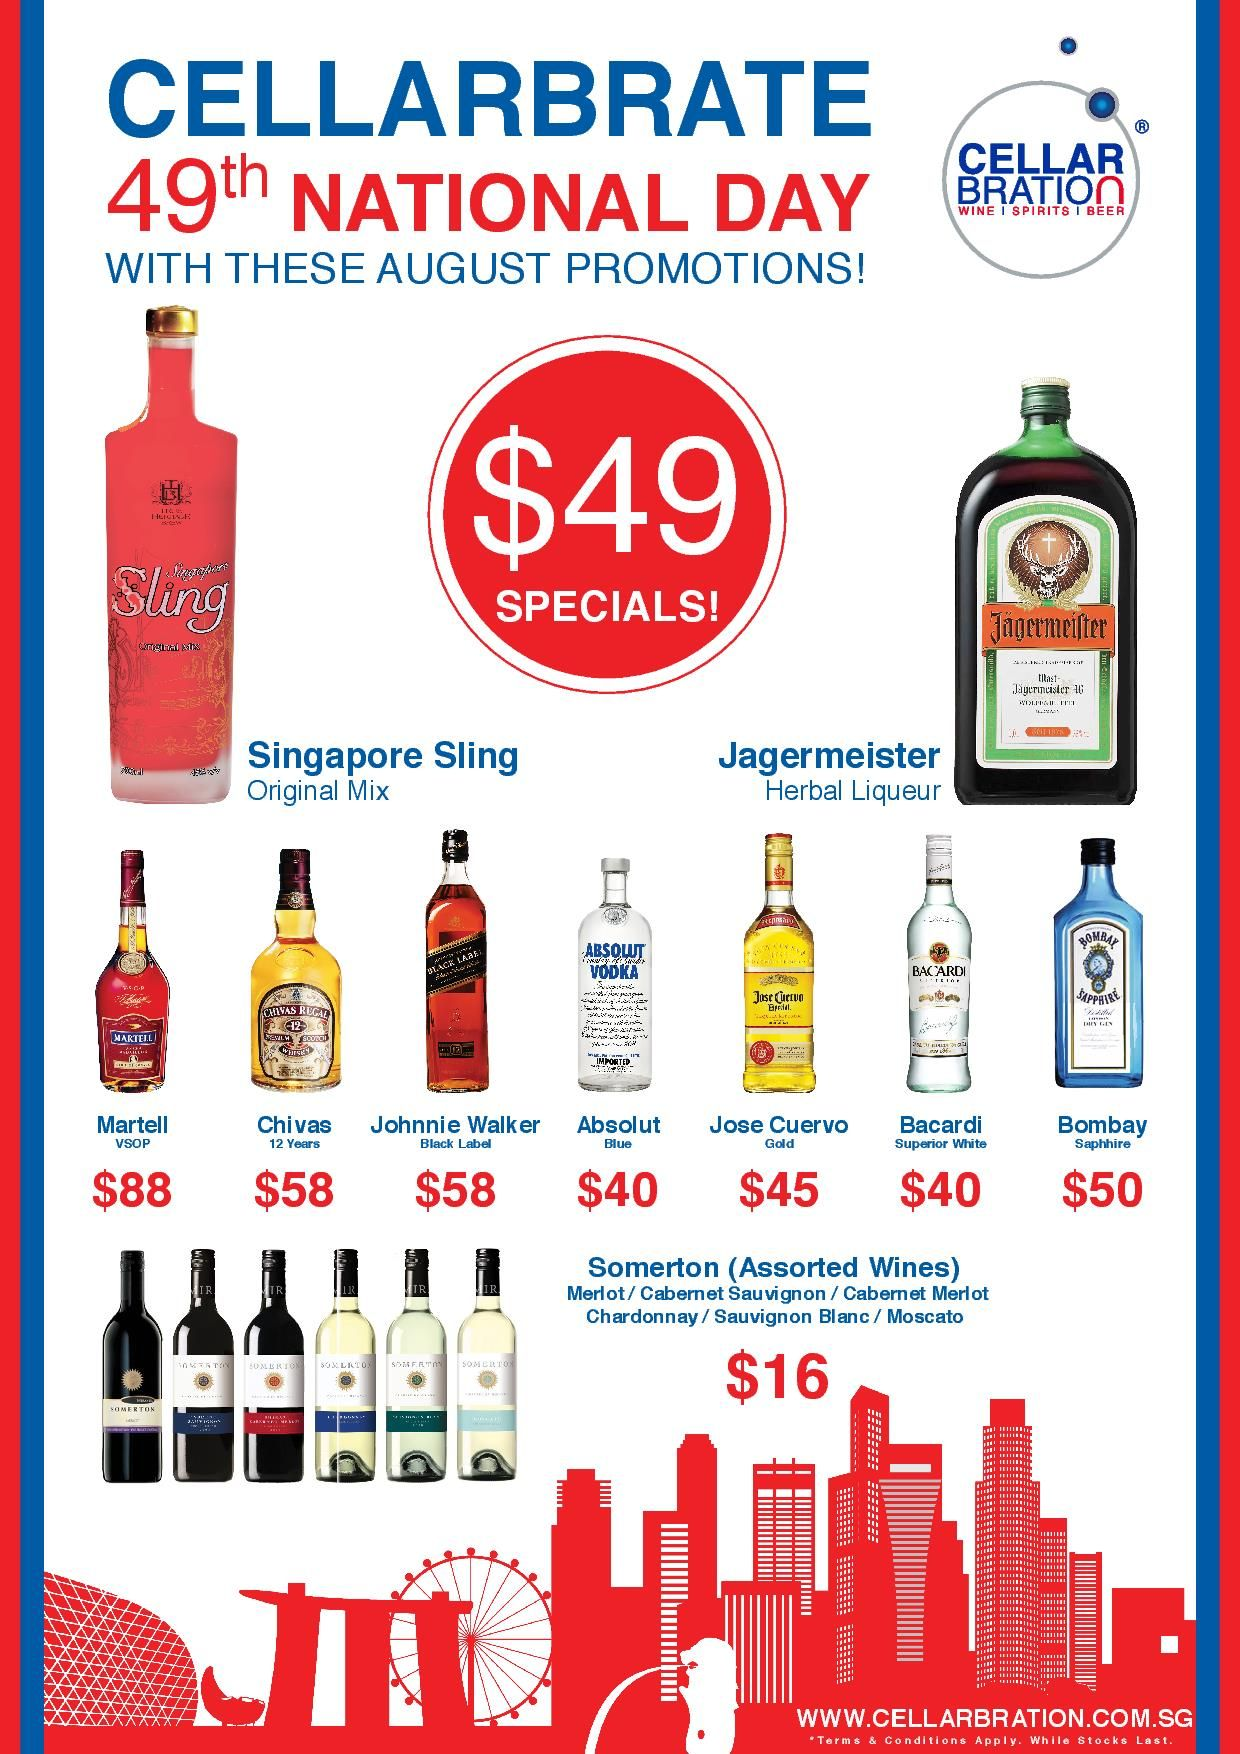 Happy 49th National Day Singapore Cellarbate With These Great Offers Www Cellarbration Com Sg Alcohol Shop Wine And Beer Wine And Spirits